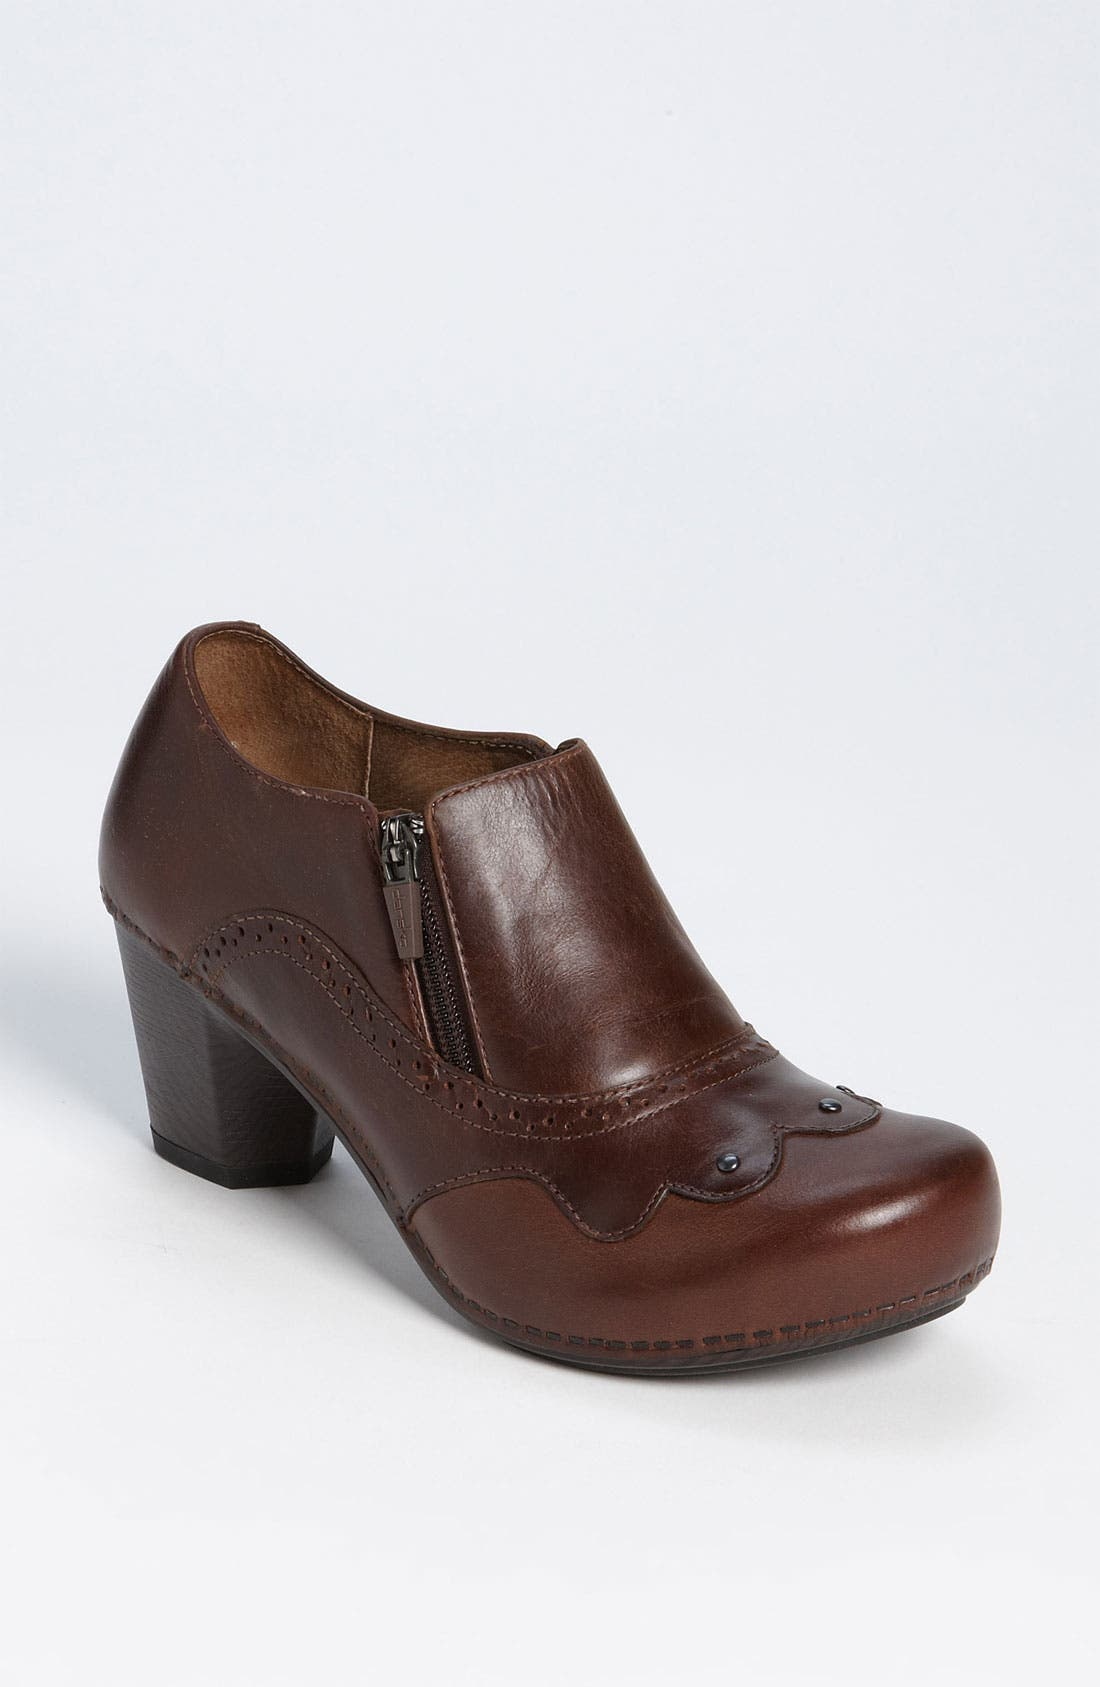 Main Image - Dansko 'Nancy' Pump